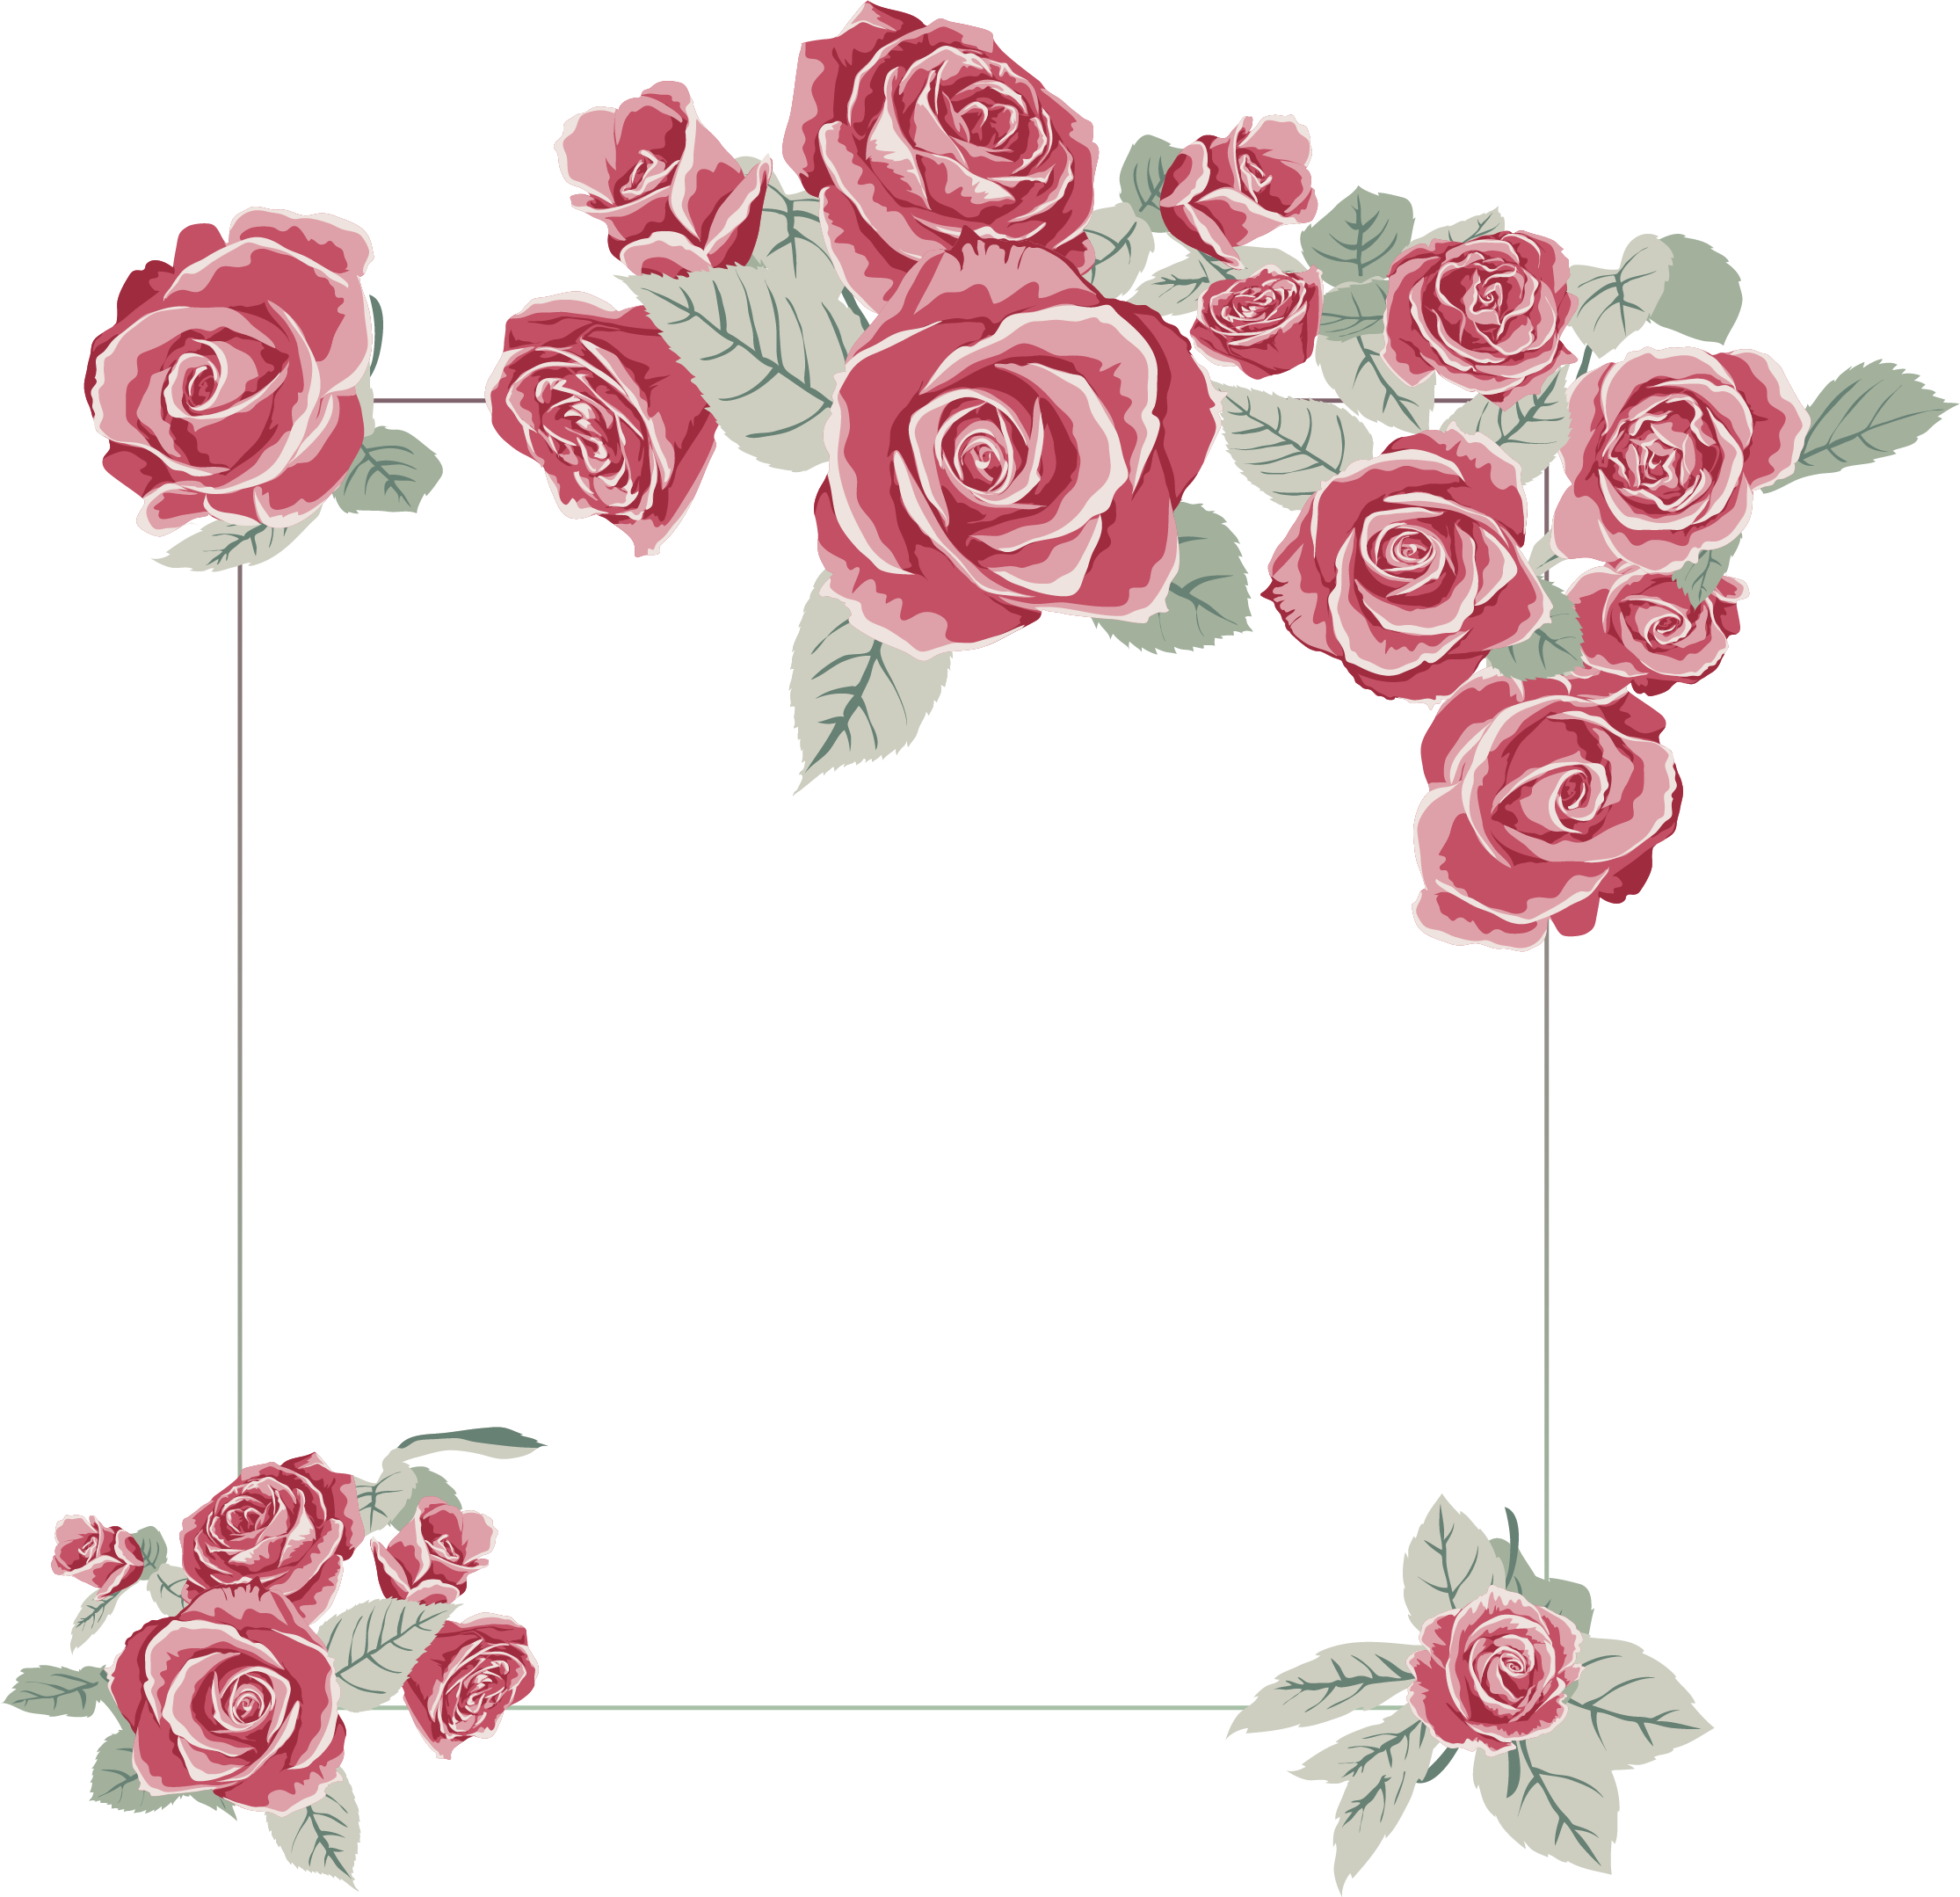 Rose frame png. Images a flower that